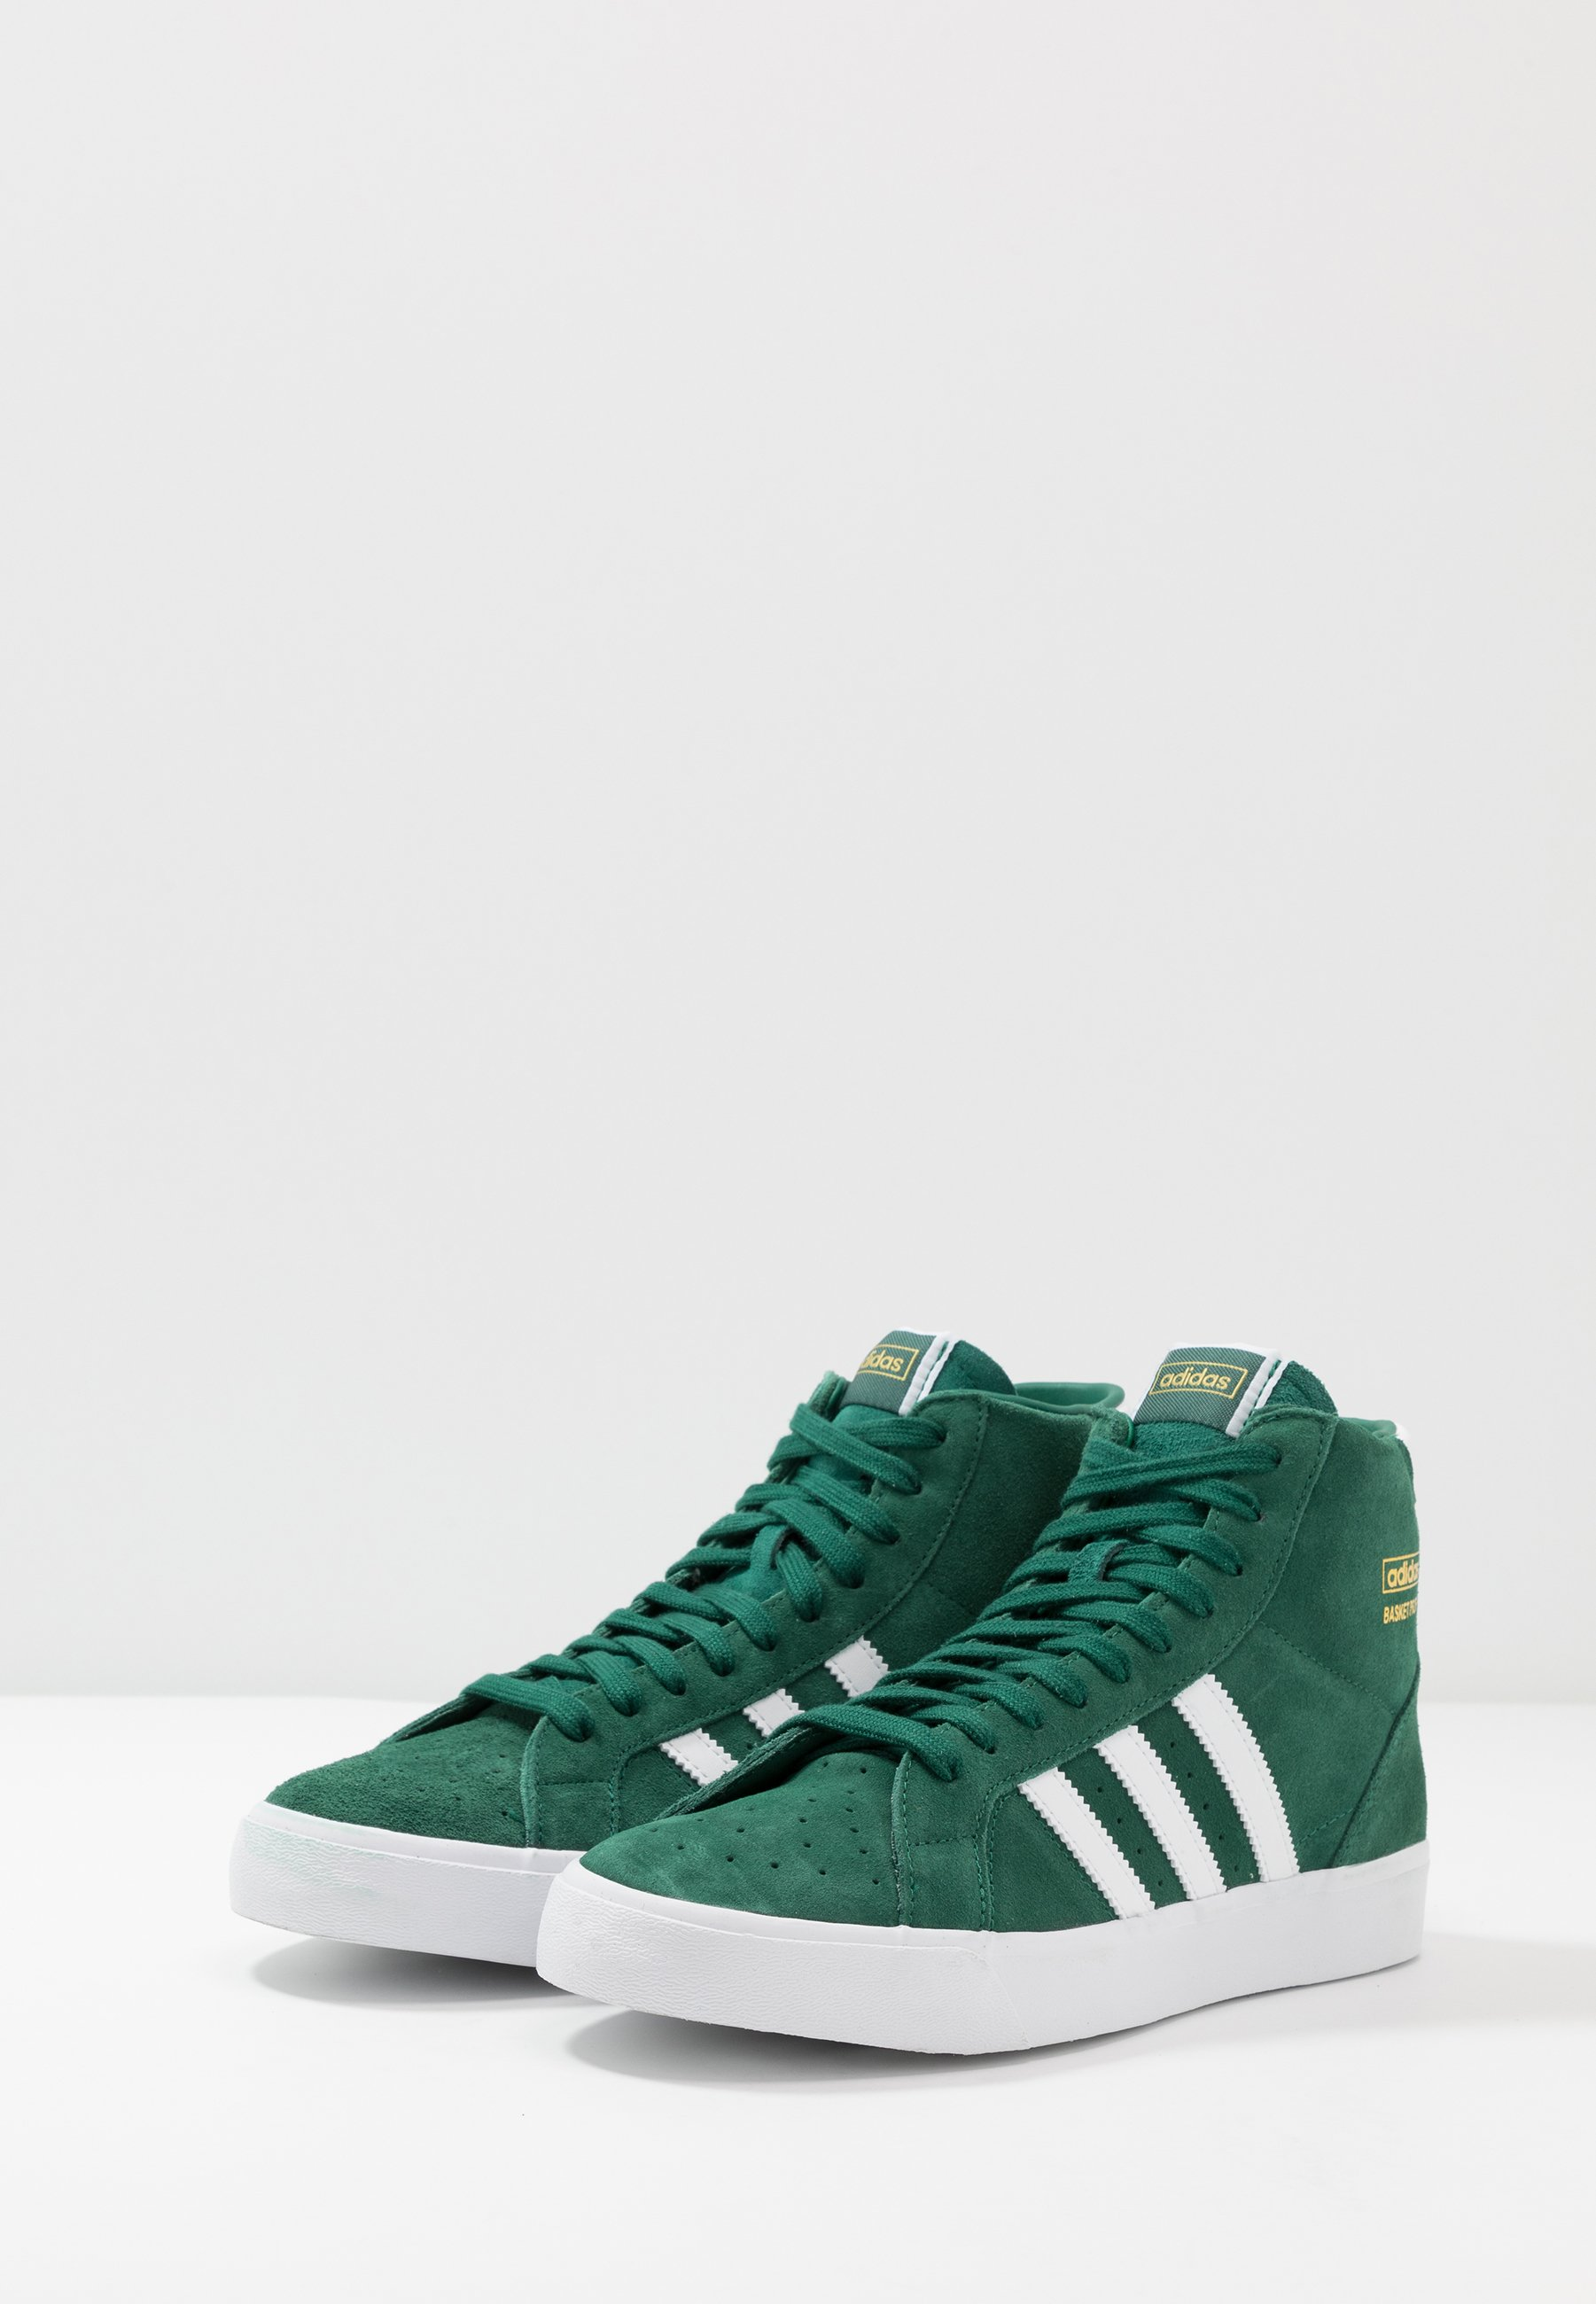 100% Original Outlet Women's Shoes adidas Originals BASKET PROFI Trainers collegiate green/footwear white/gold metallic H5A8wHNBv hBQbcNH7k